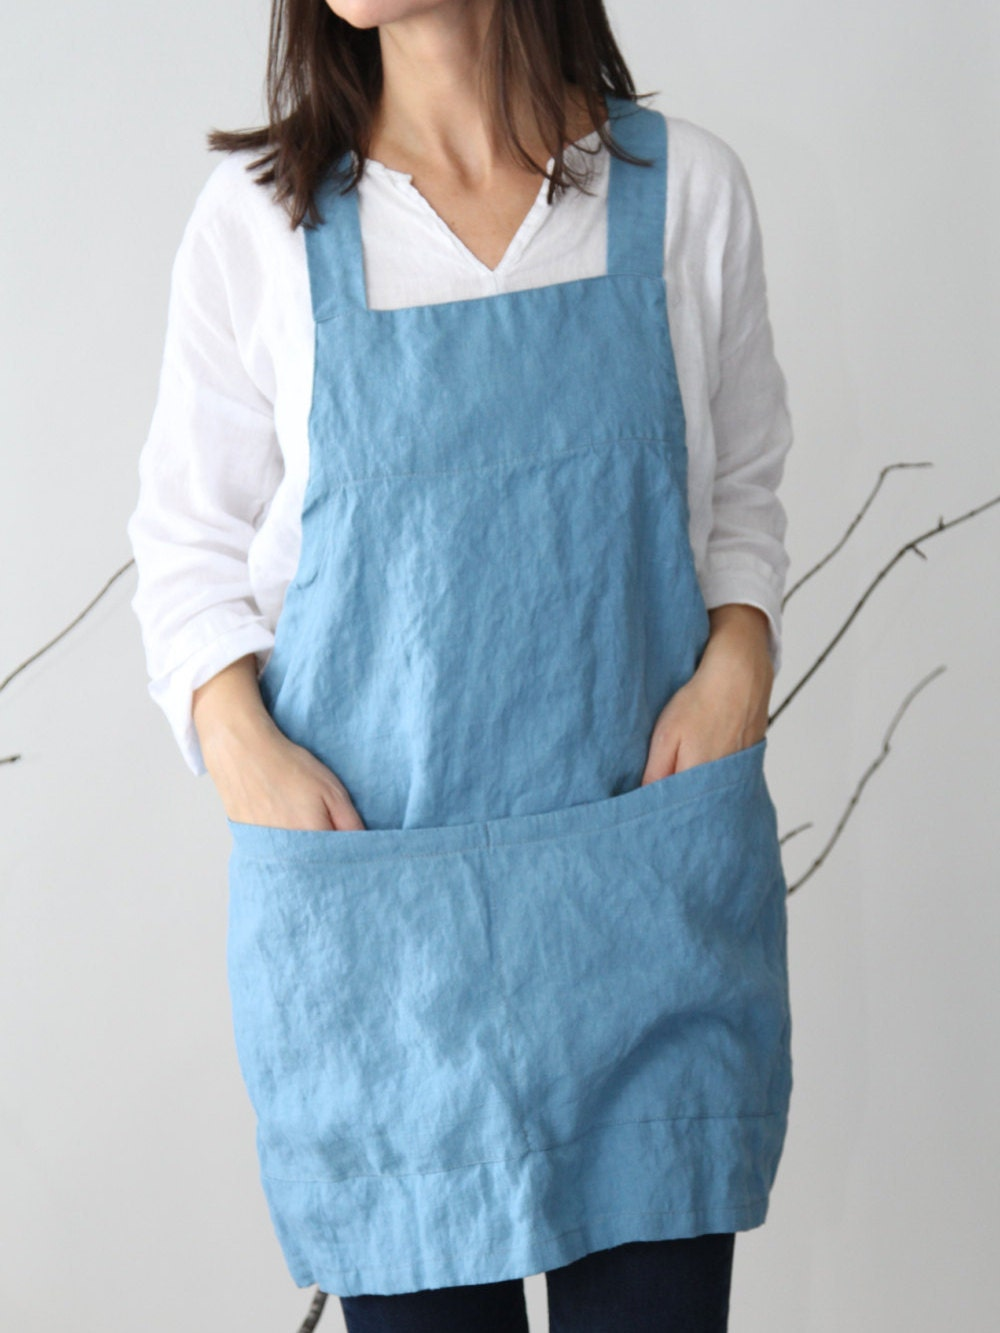 linen criss cross apron pinafore no ties by lostinlinen on etsy. Black Bedroom Furniture Sets. Home Design Ideas